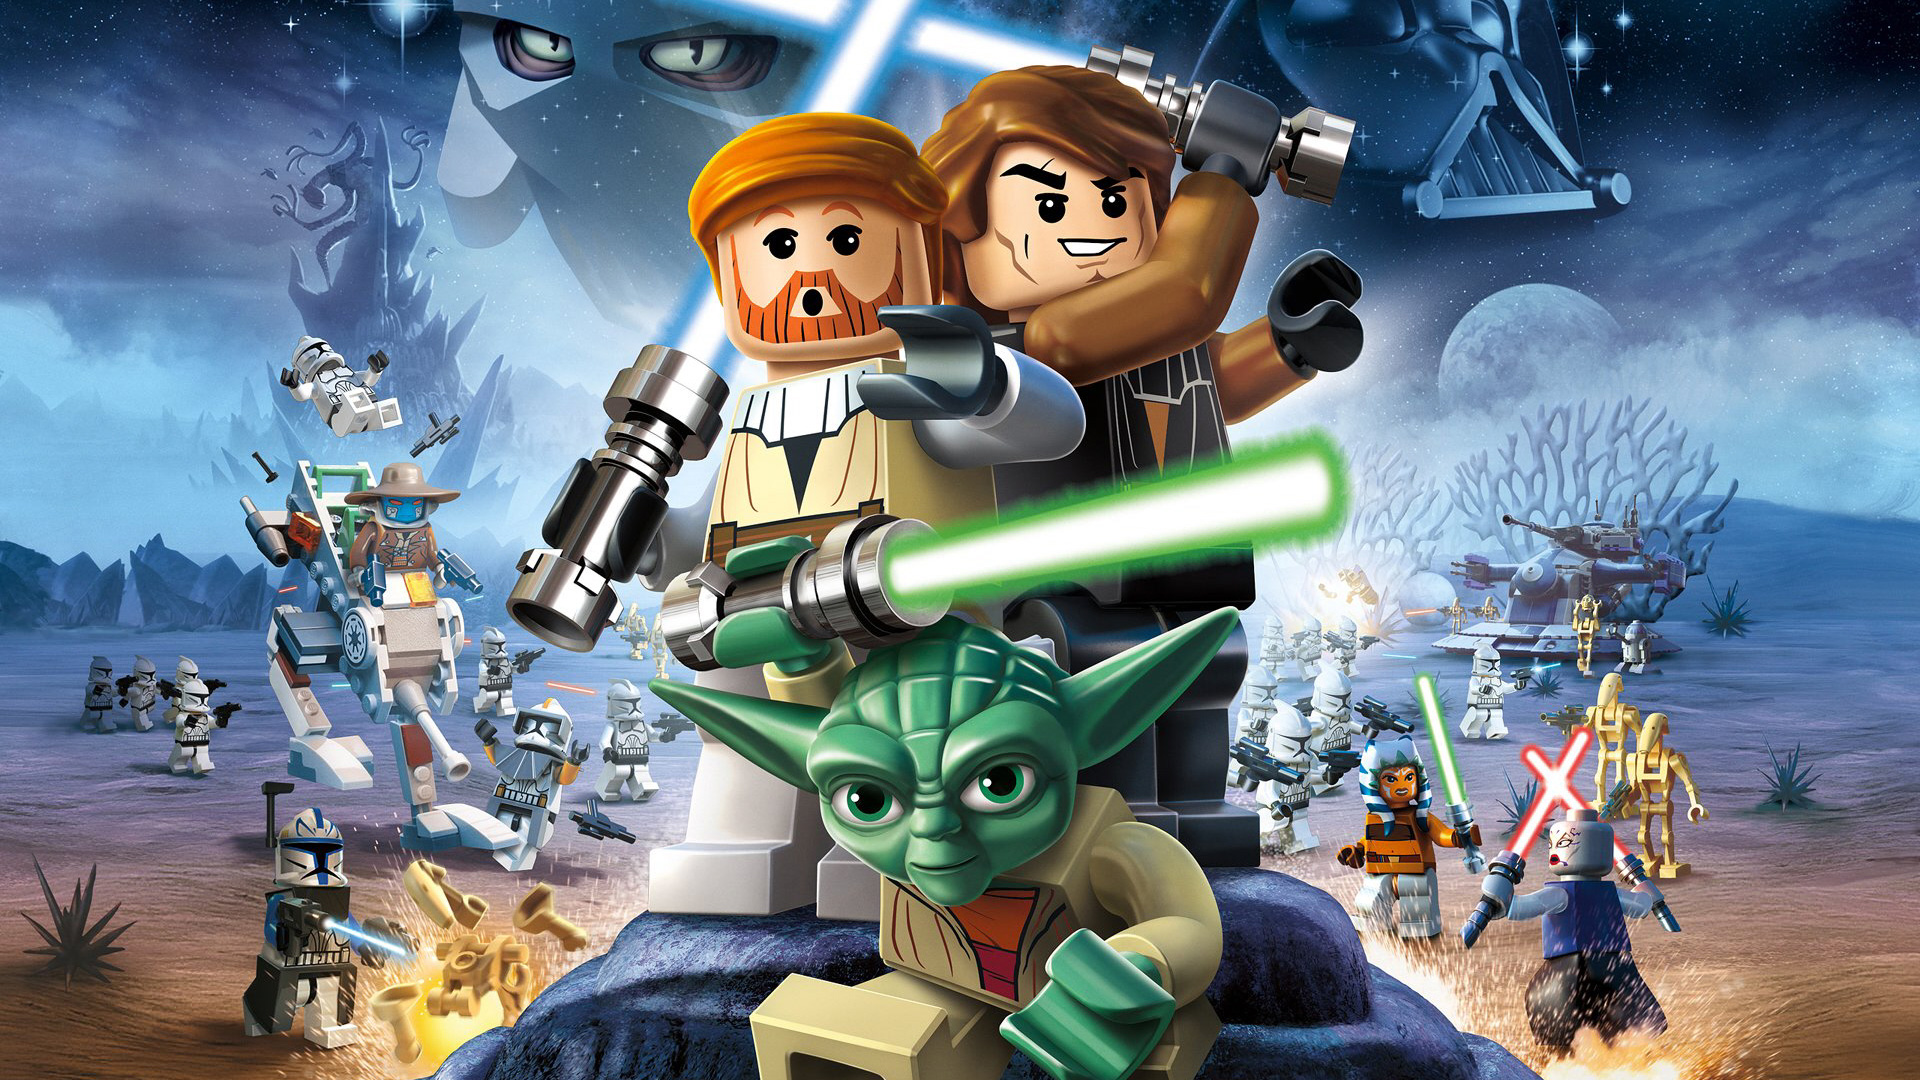 Free Lego Star Wars III: The Clone Wars Wallpaper in 1920x1080